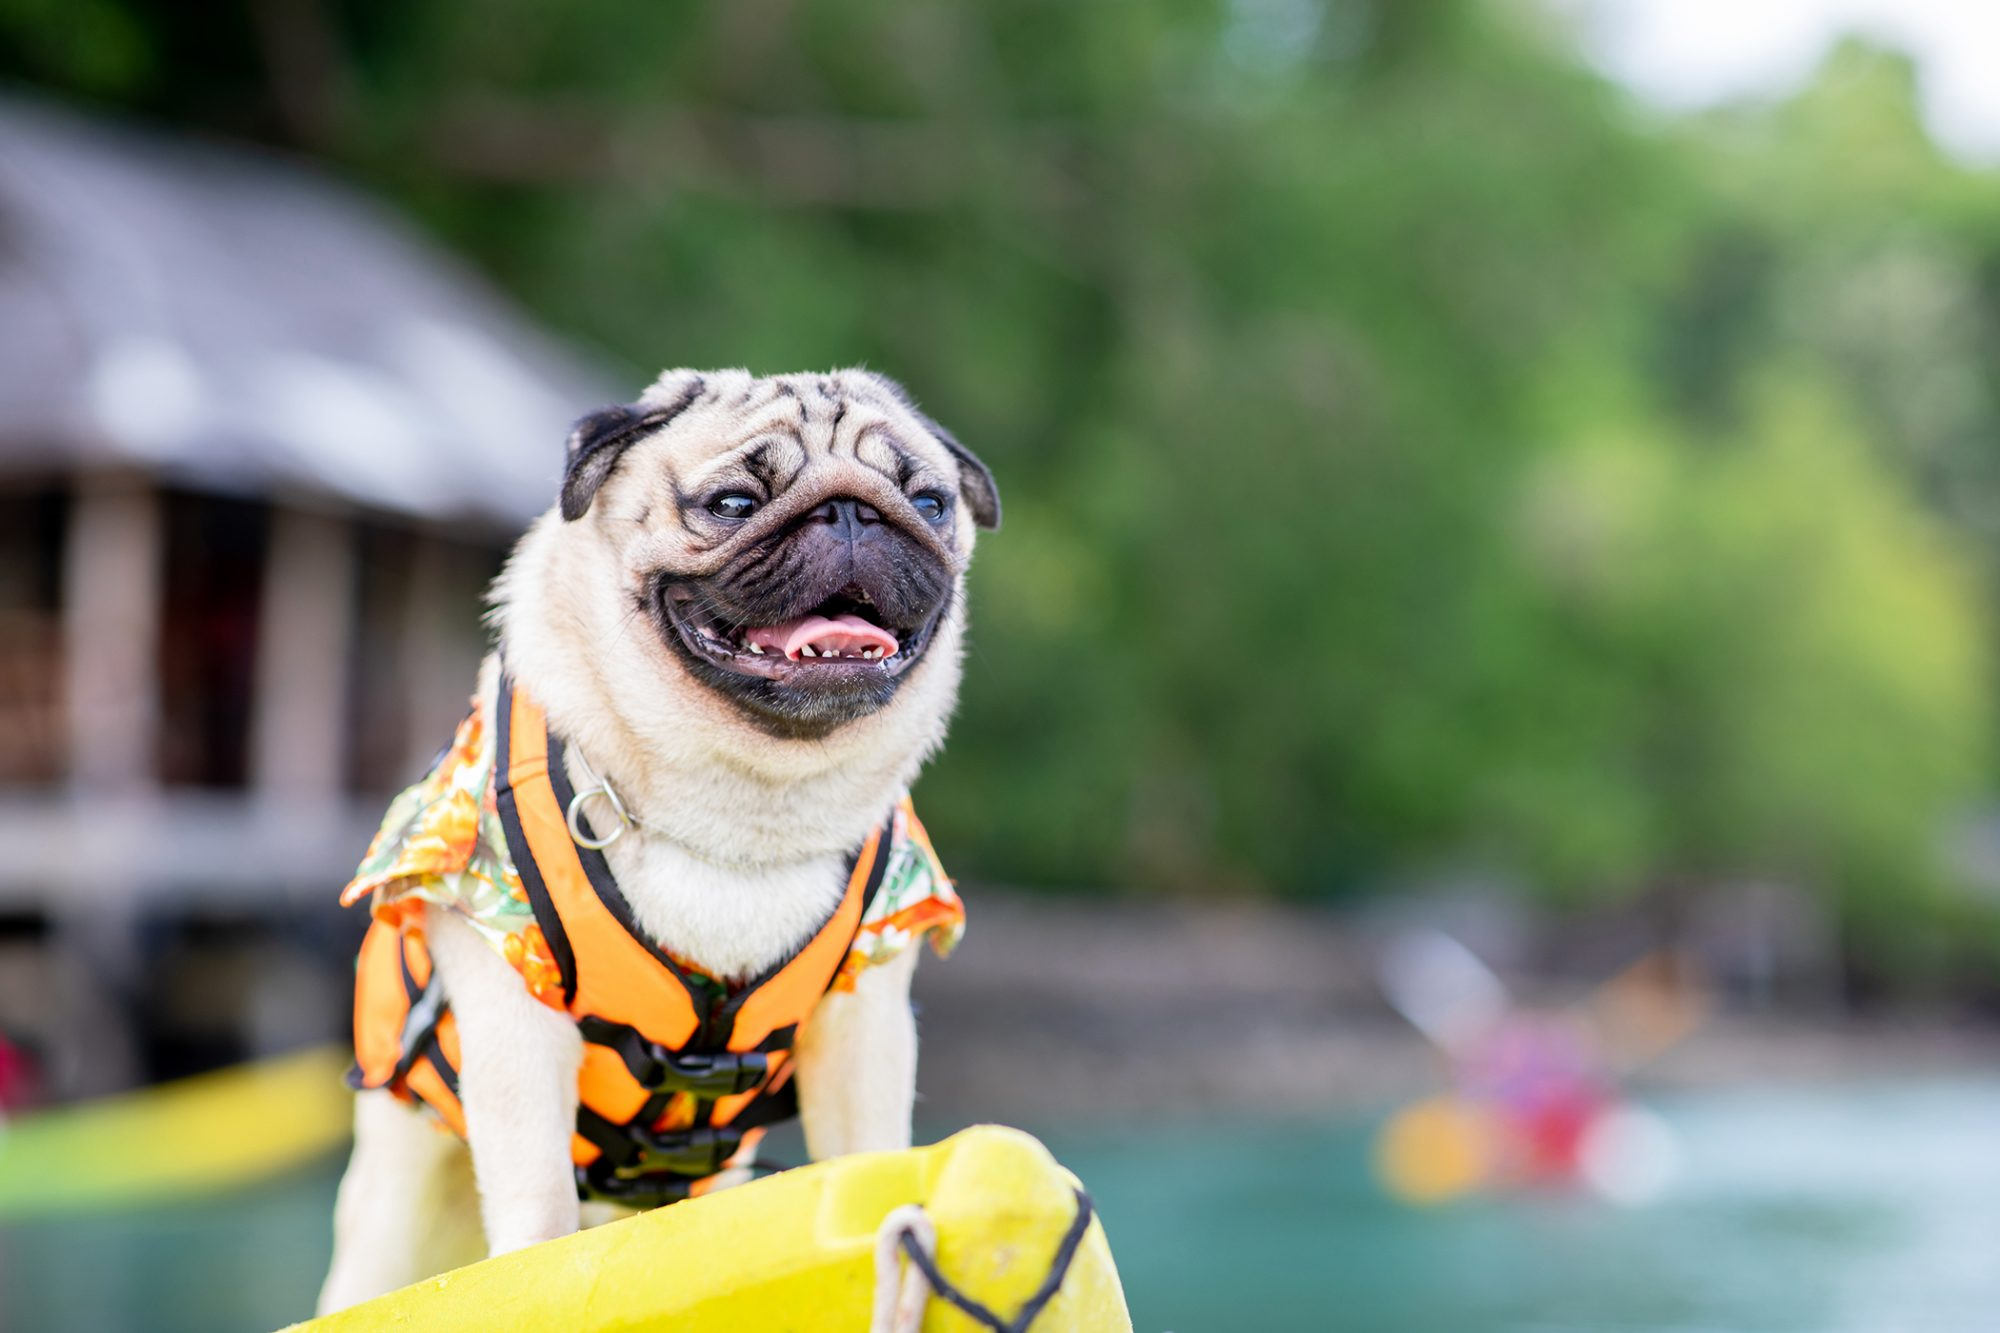 Tan pug happily stands on edge of yellow kayak while wearing orange lifejacket